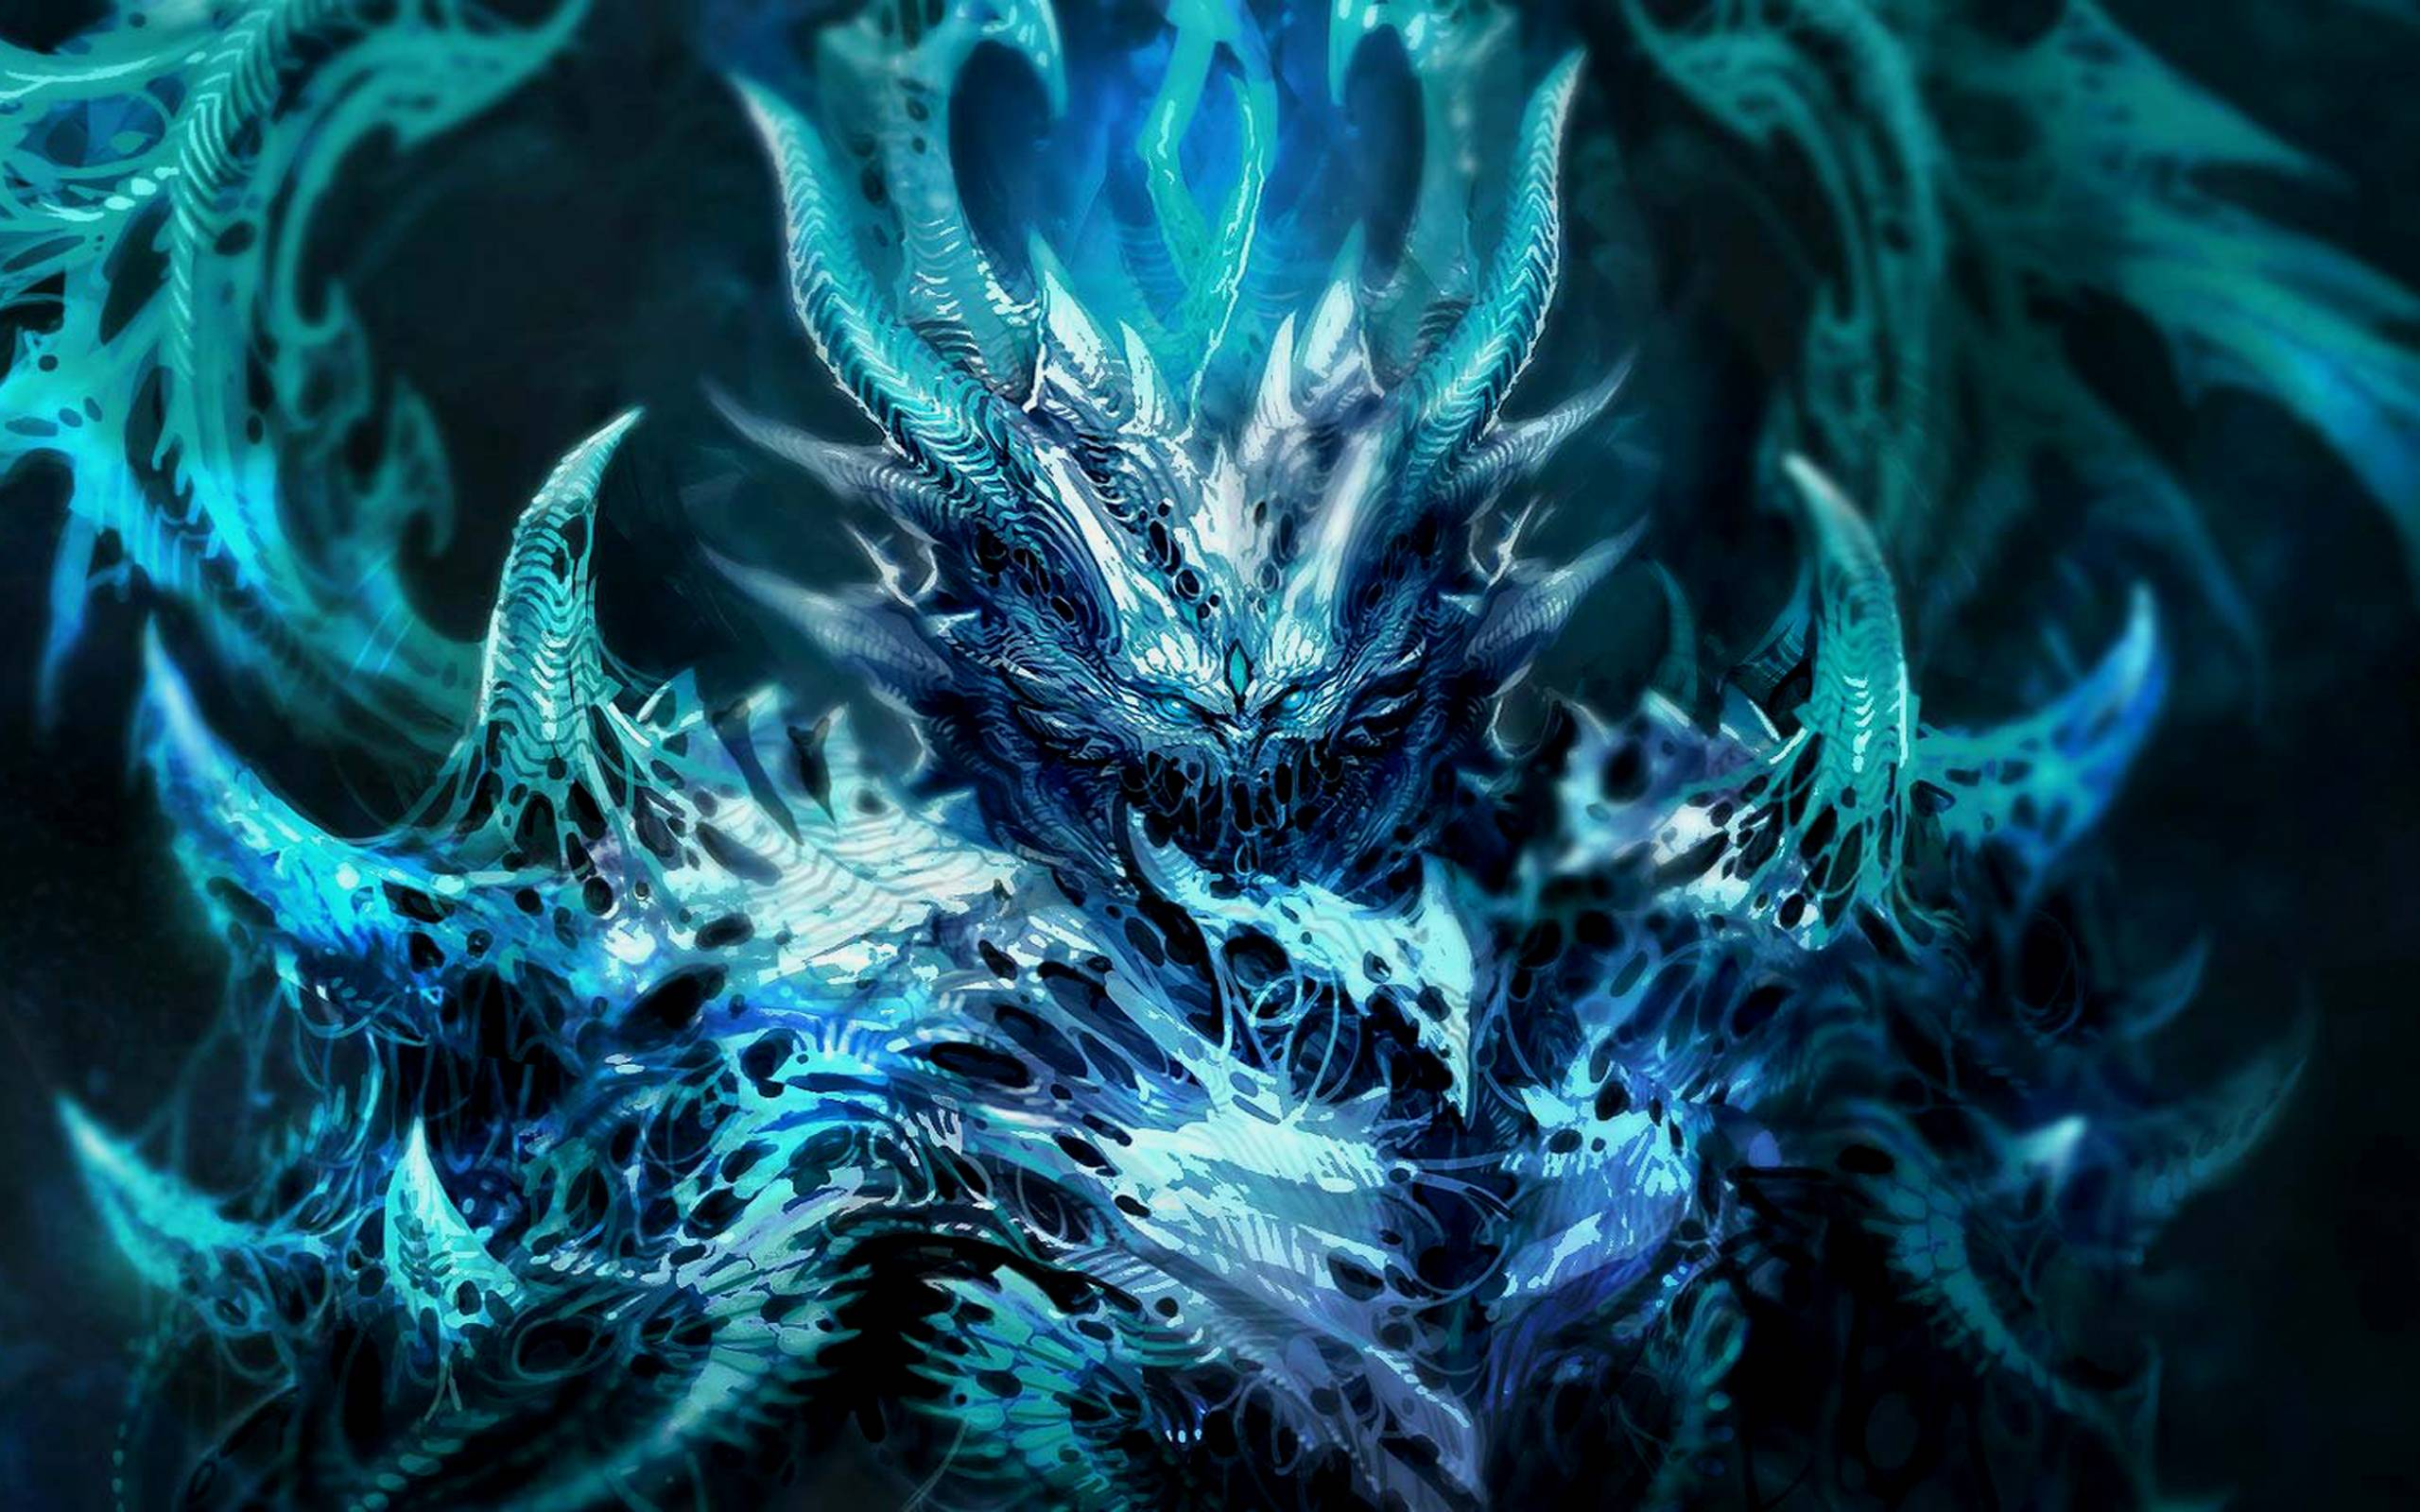 Demon Wallpaper Free Download